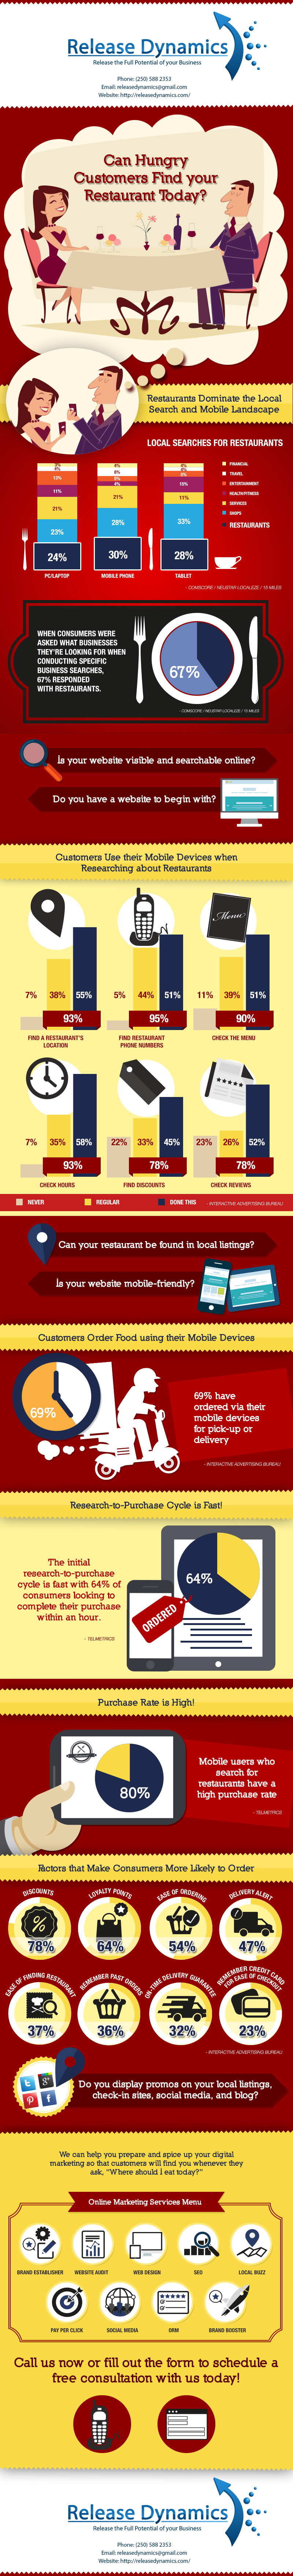 ReleaseDynamics.com-Online-Marketing-for-Restaurants-Infographic